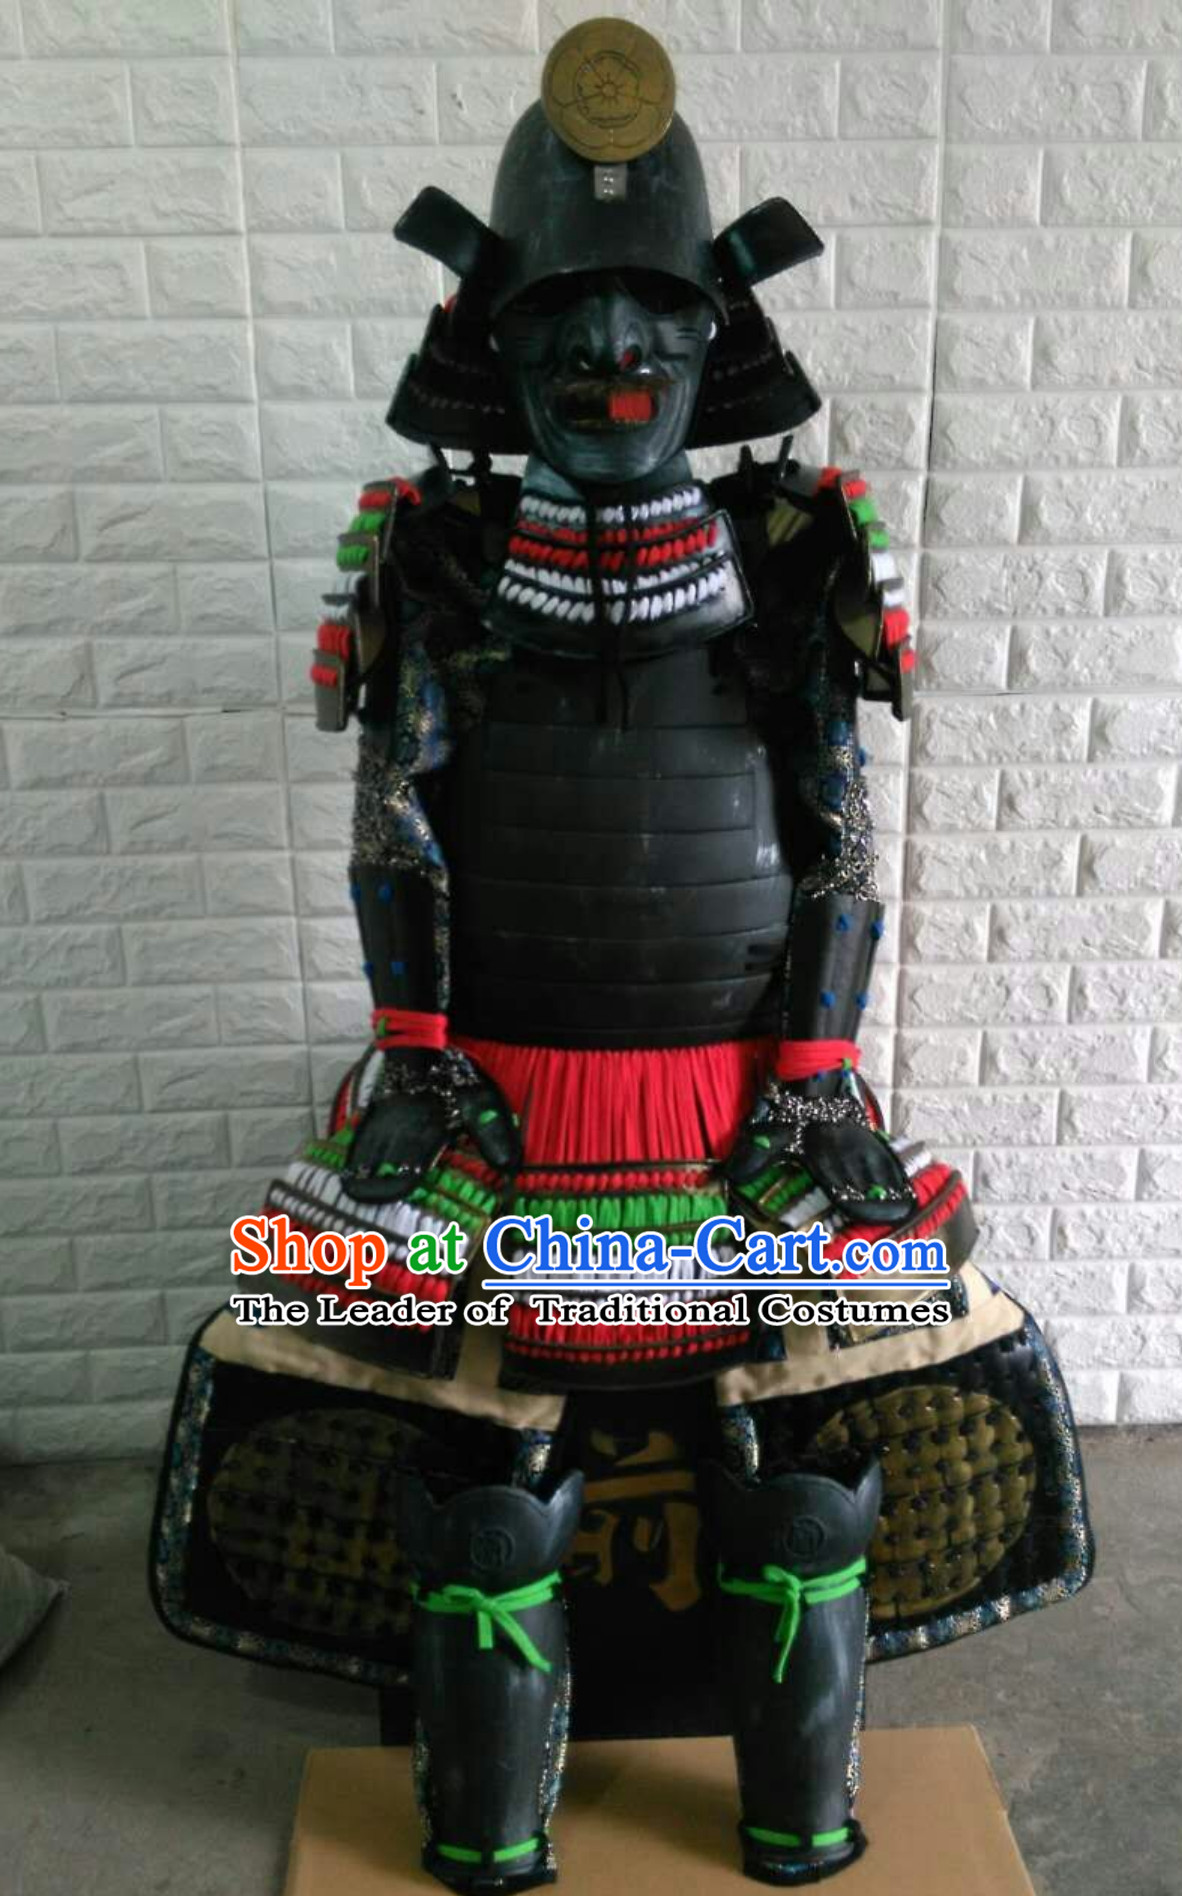 Authentic Japanese Samurai Armor Japanese Samurai Body Armor Custom Japanese Samurai Armor Mask and Body Armors Full Set